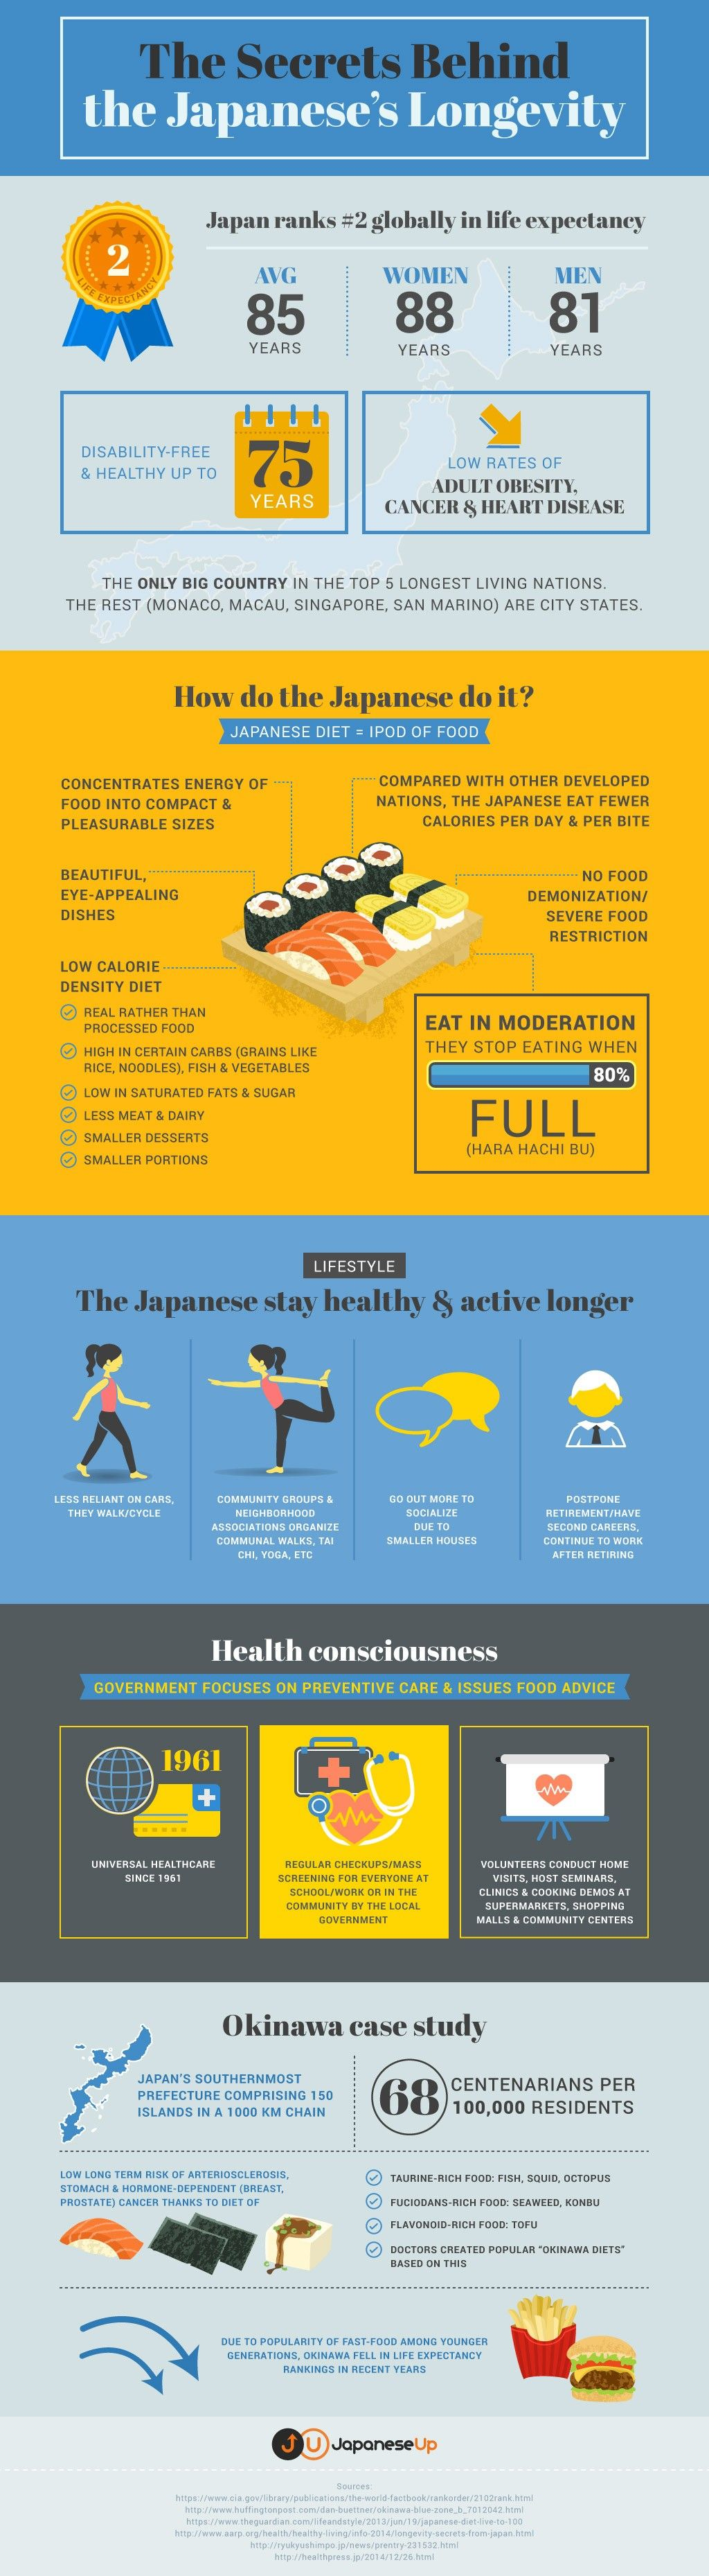 The Secrets Behind the Japanese